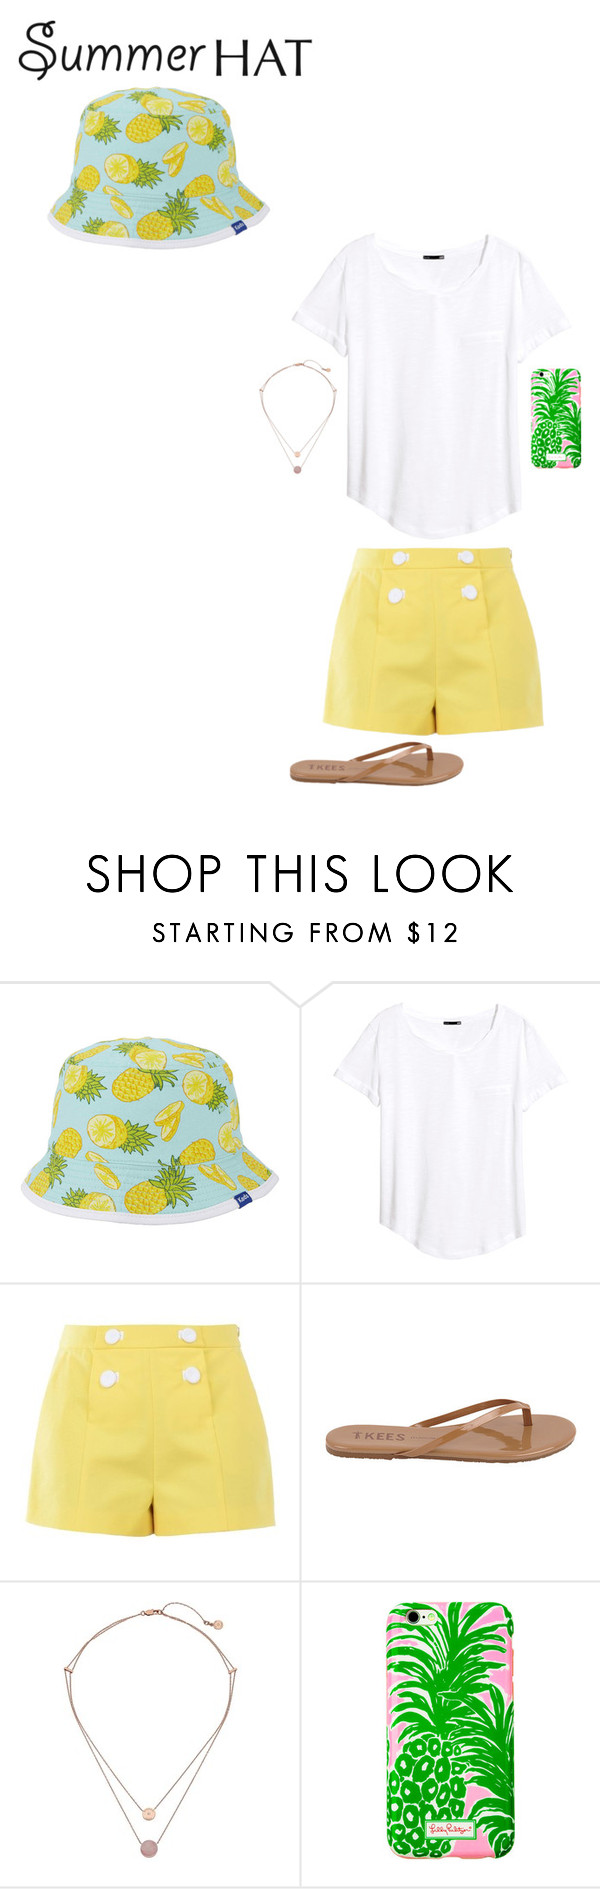 """Summer hat"" by jamierosesmith ❤ liked on Polyvore featuring Keds, H&M, Boutique Moschino, Tkees, Michael Kors, Lilly Pulitzer and summerhat"